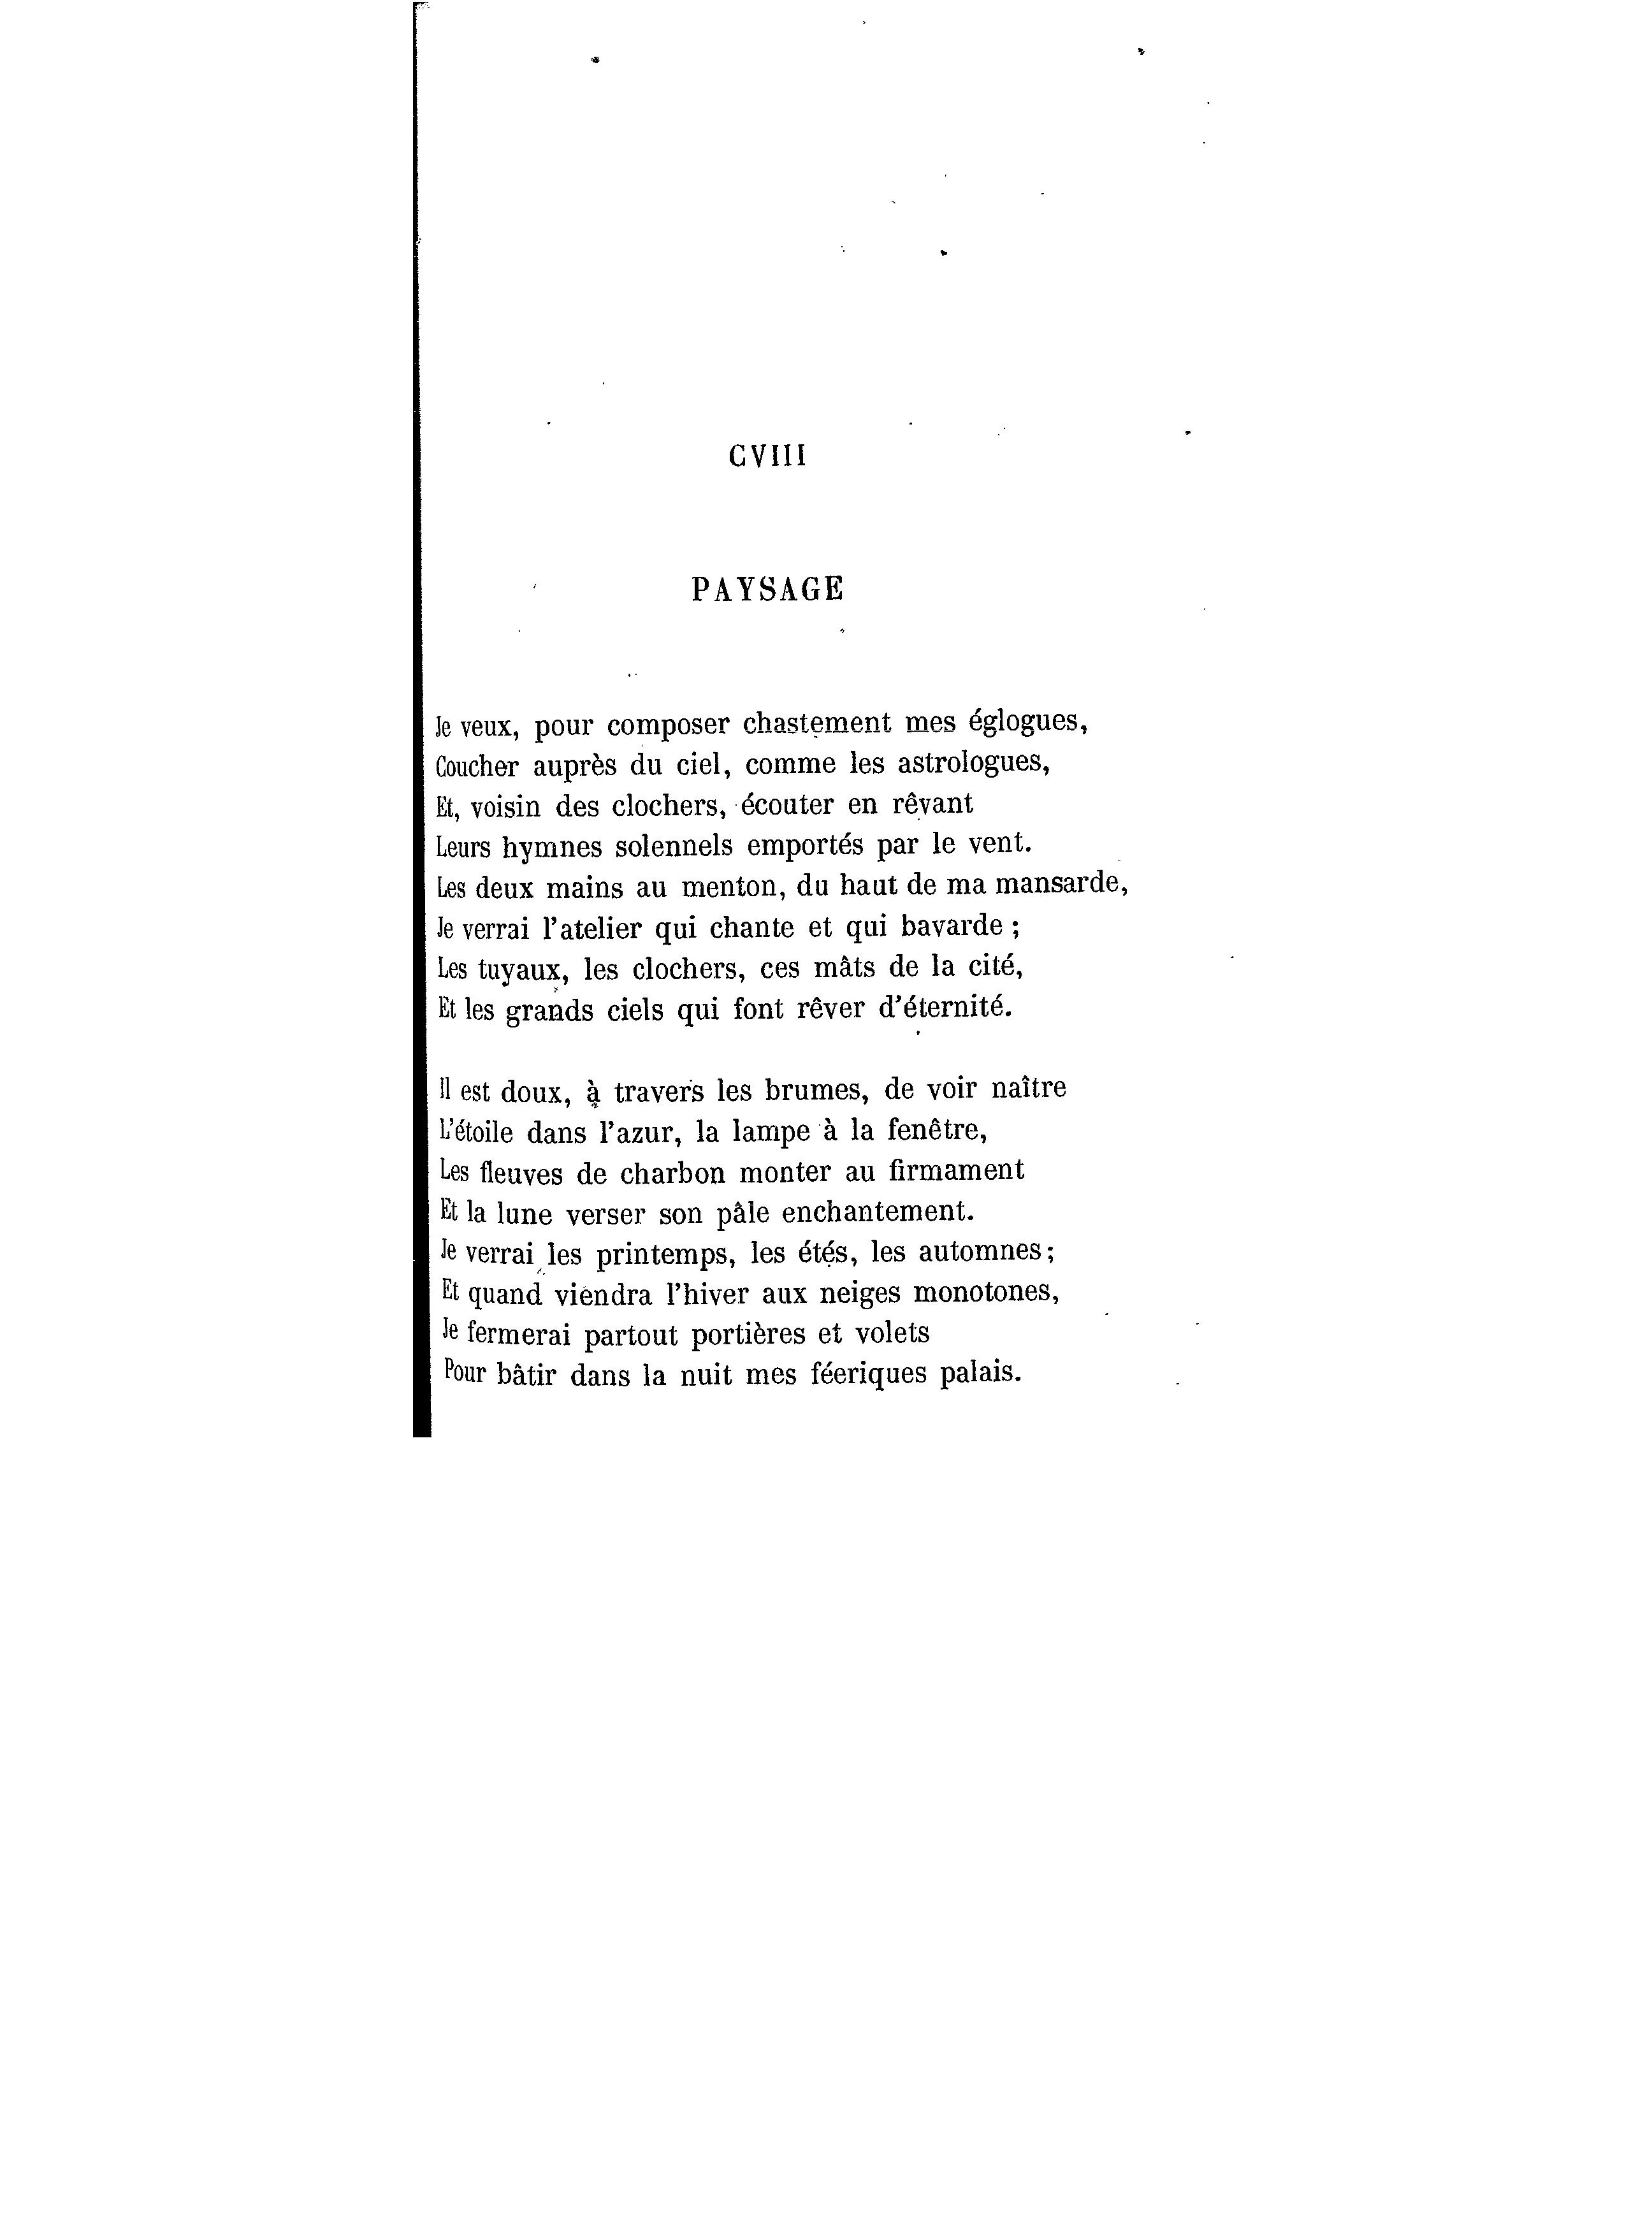 Charles Baudelaire - poems - PoemHunter.Com